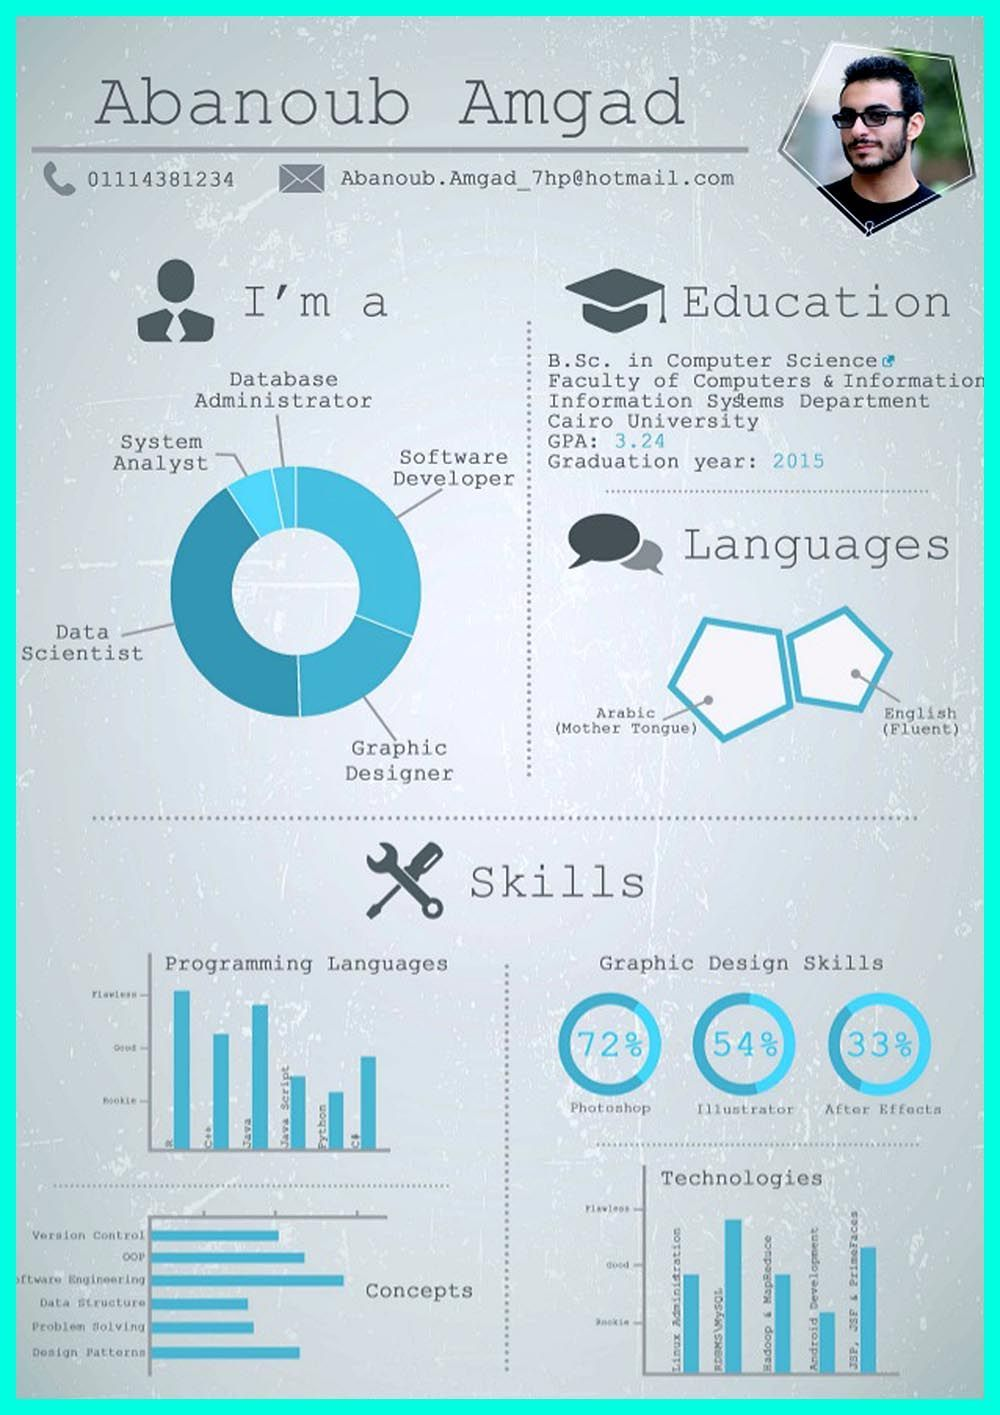 Pin By Risma Rani On Resume Templates And Examples Data Scientist Data Analyst Quotes Infographic Resume